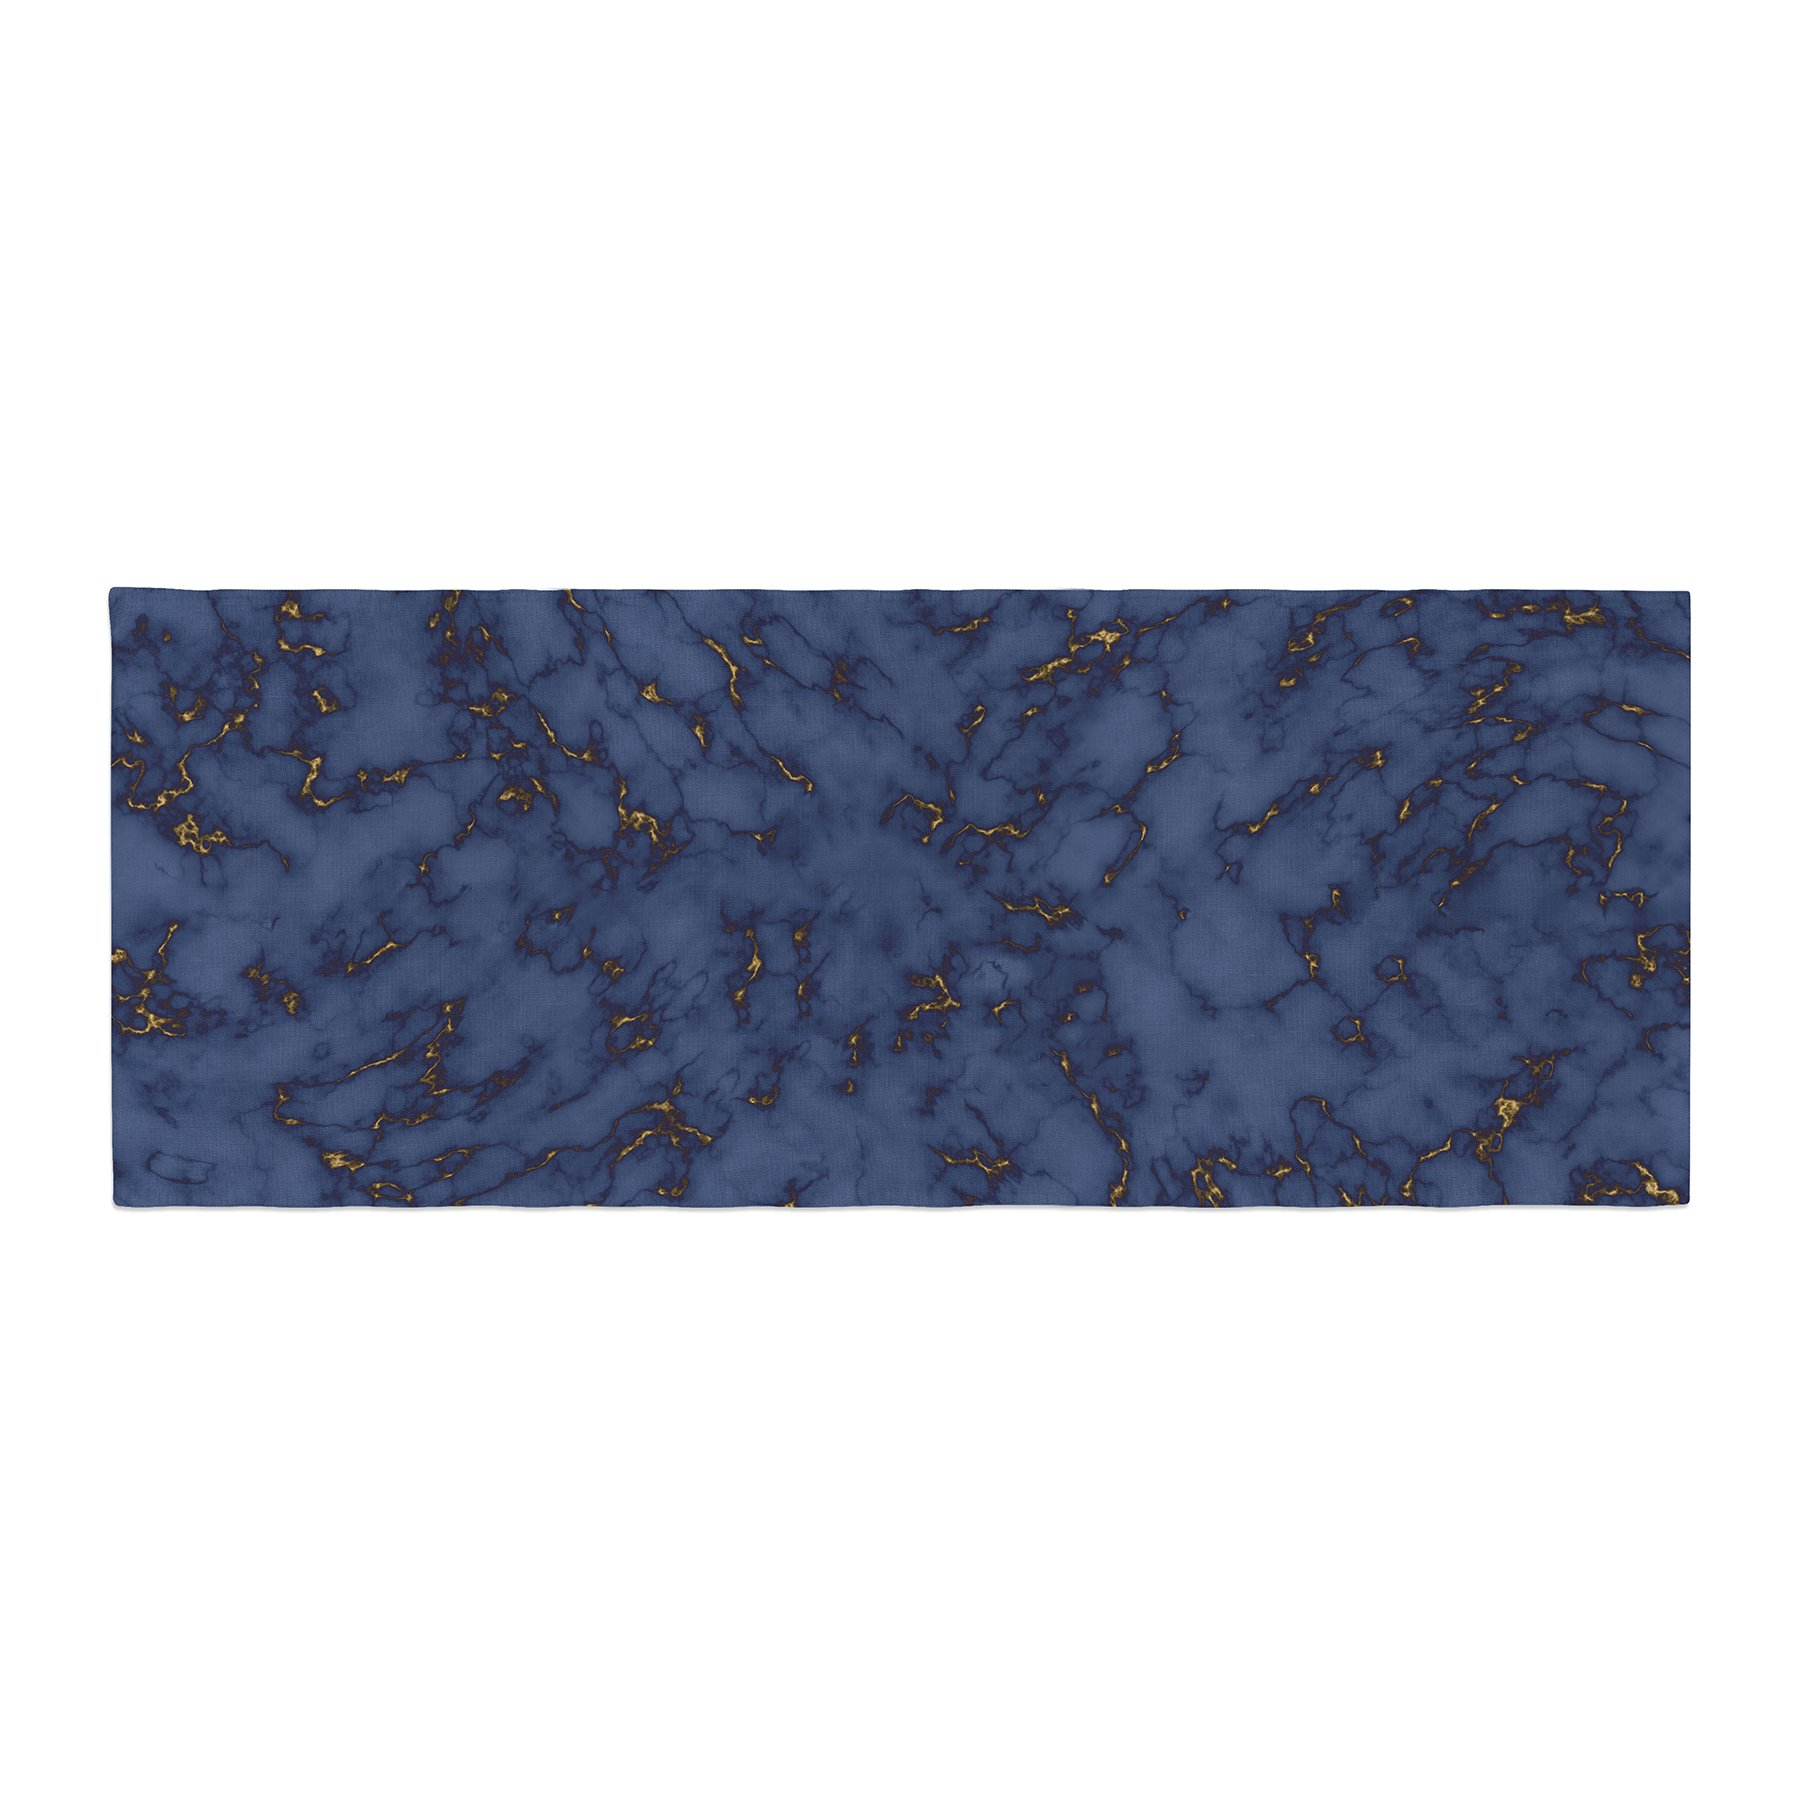 Kess InHouse Will Wild Blue & Gold Marble Navy Abstract Bed Runner, 34'' x 86''